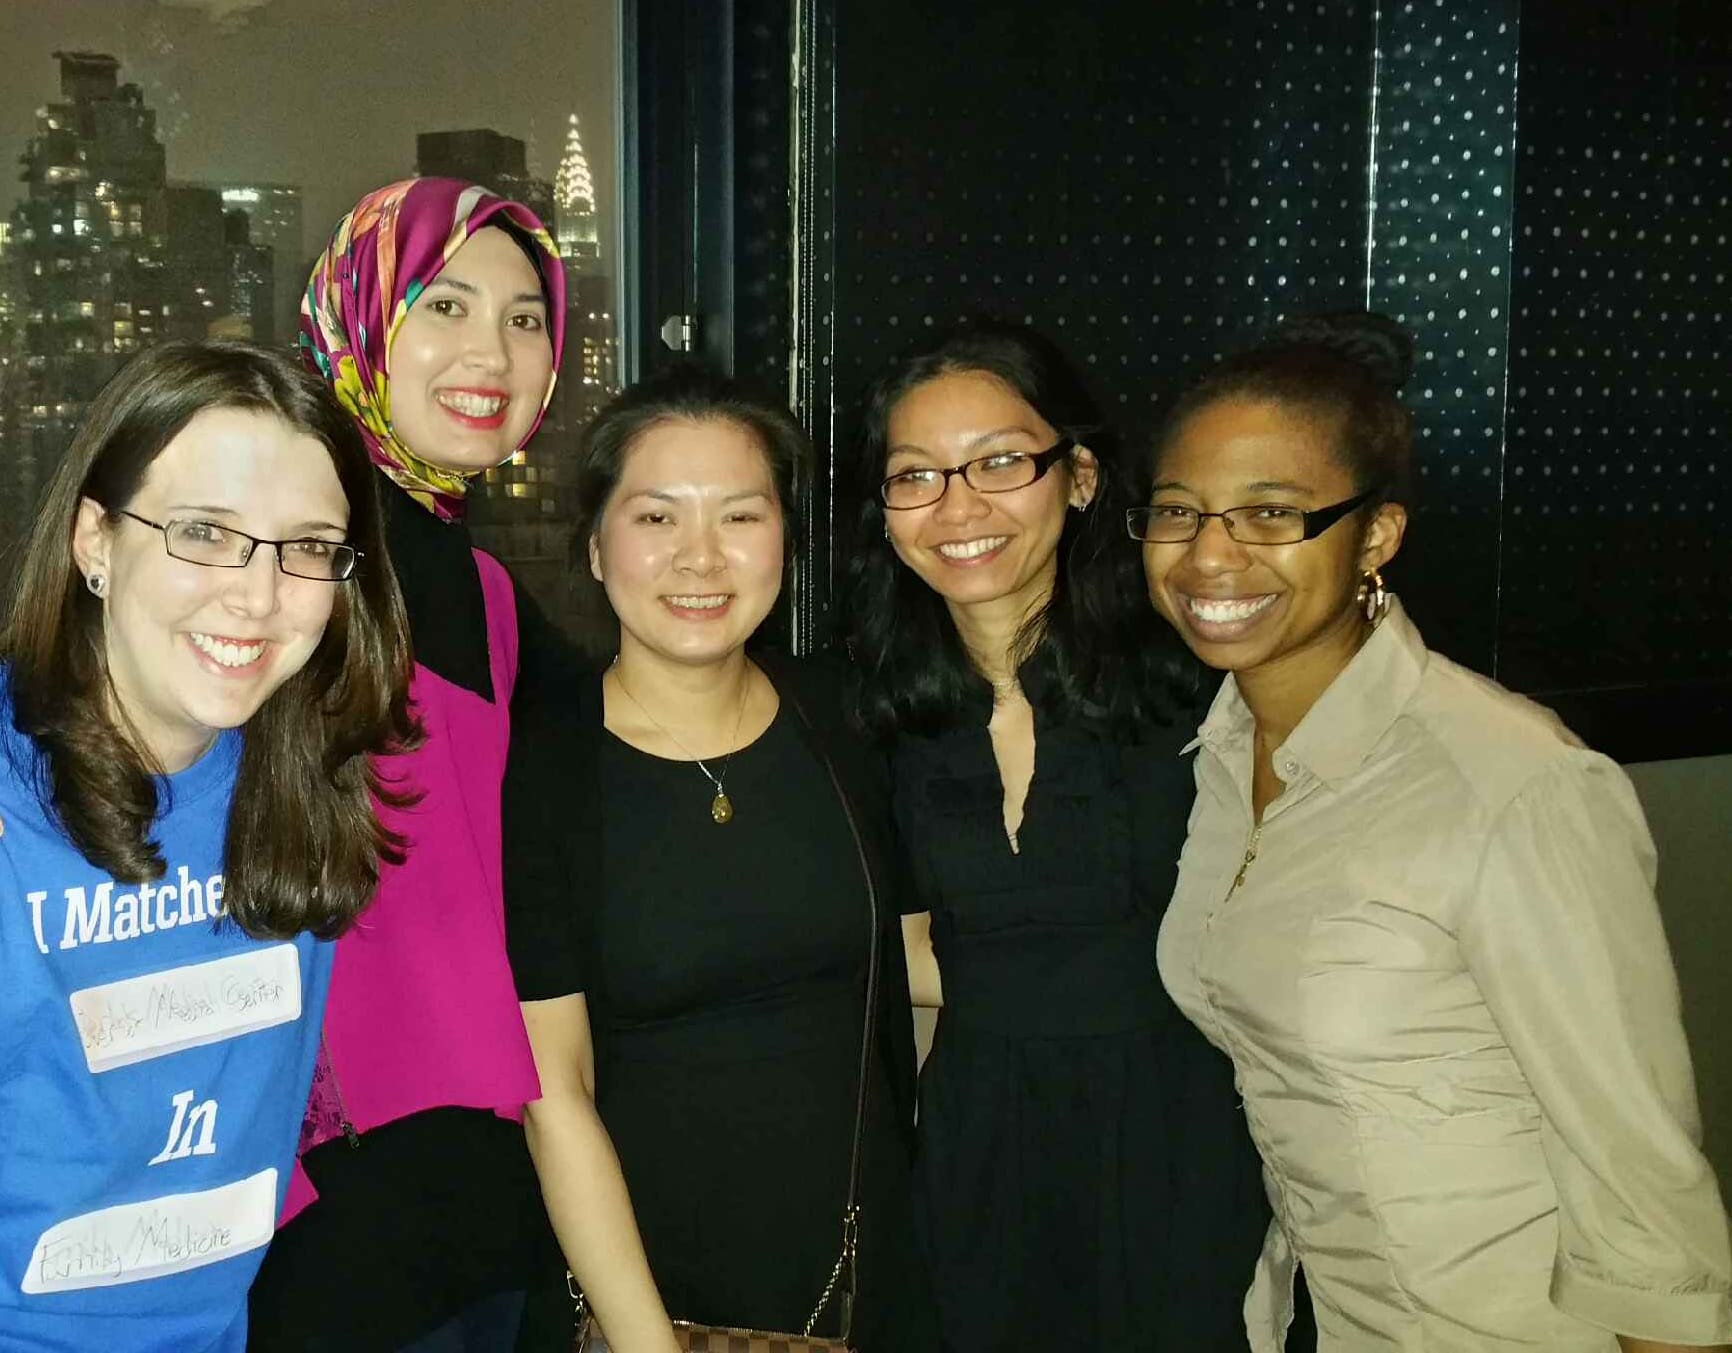 Students from TOUROCOM's Class of 2016 celebrating at a Residency Match Party, left to right: Gabrielle Rozenberg, Sarah Rooney, Kim Tuyen B. Lam, Shelley Co and Olga Jacques